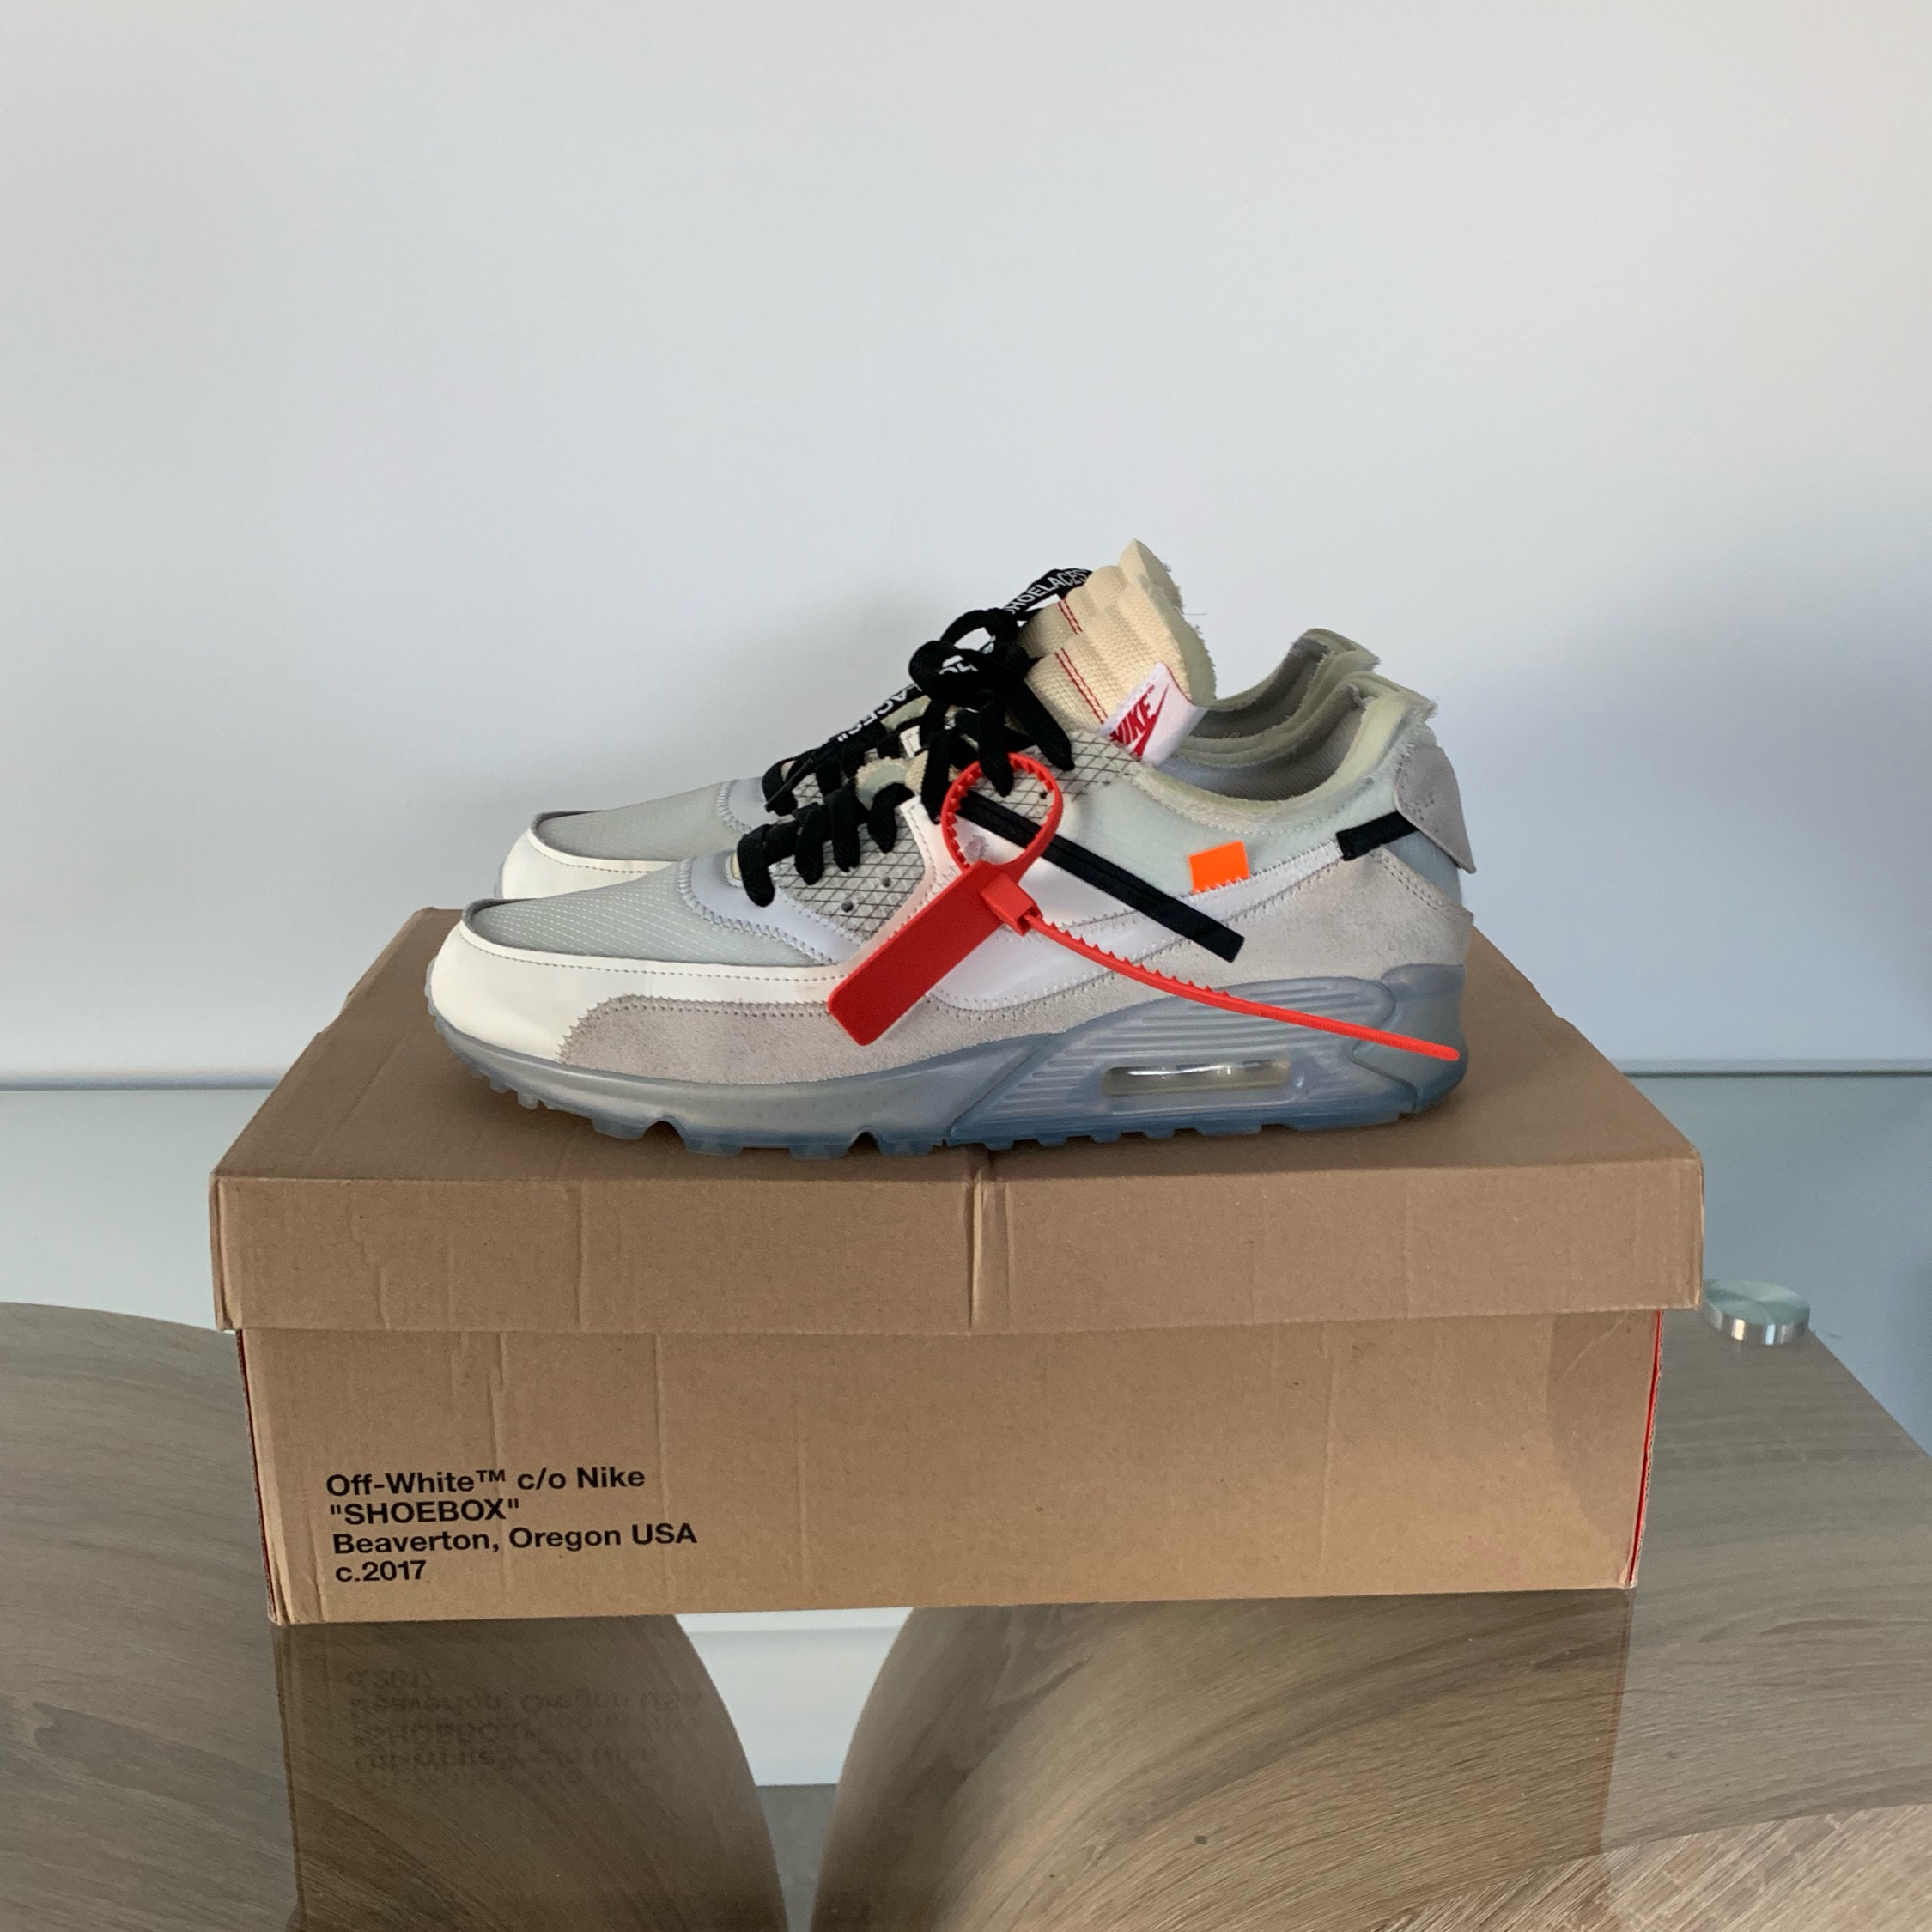 Off-White Air Max 90 White Og (Looking For Trades)